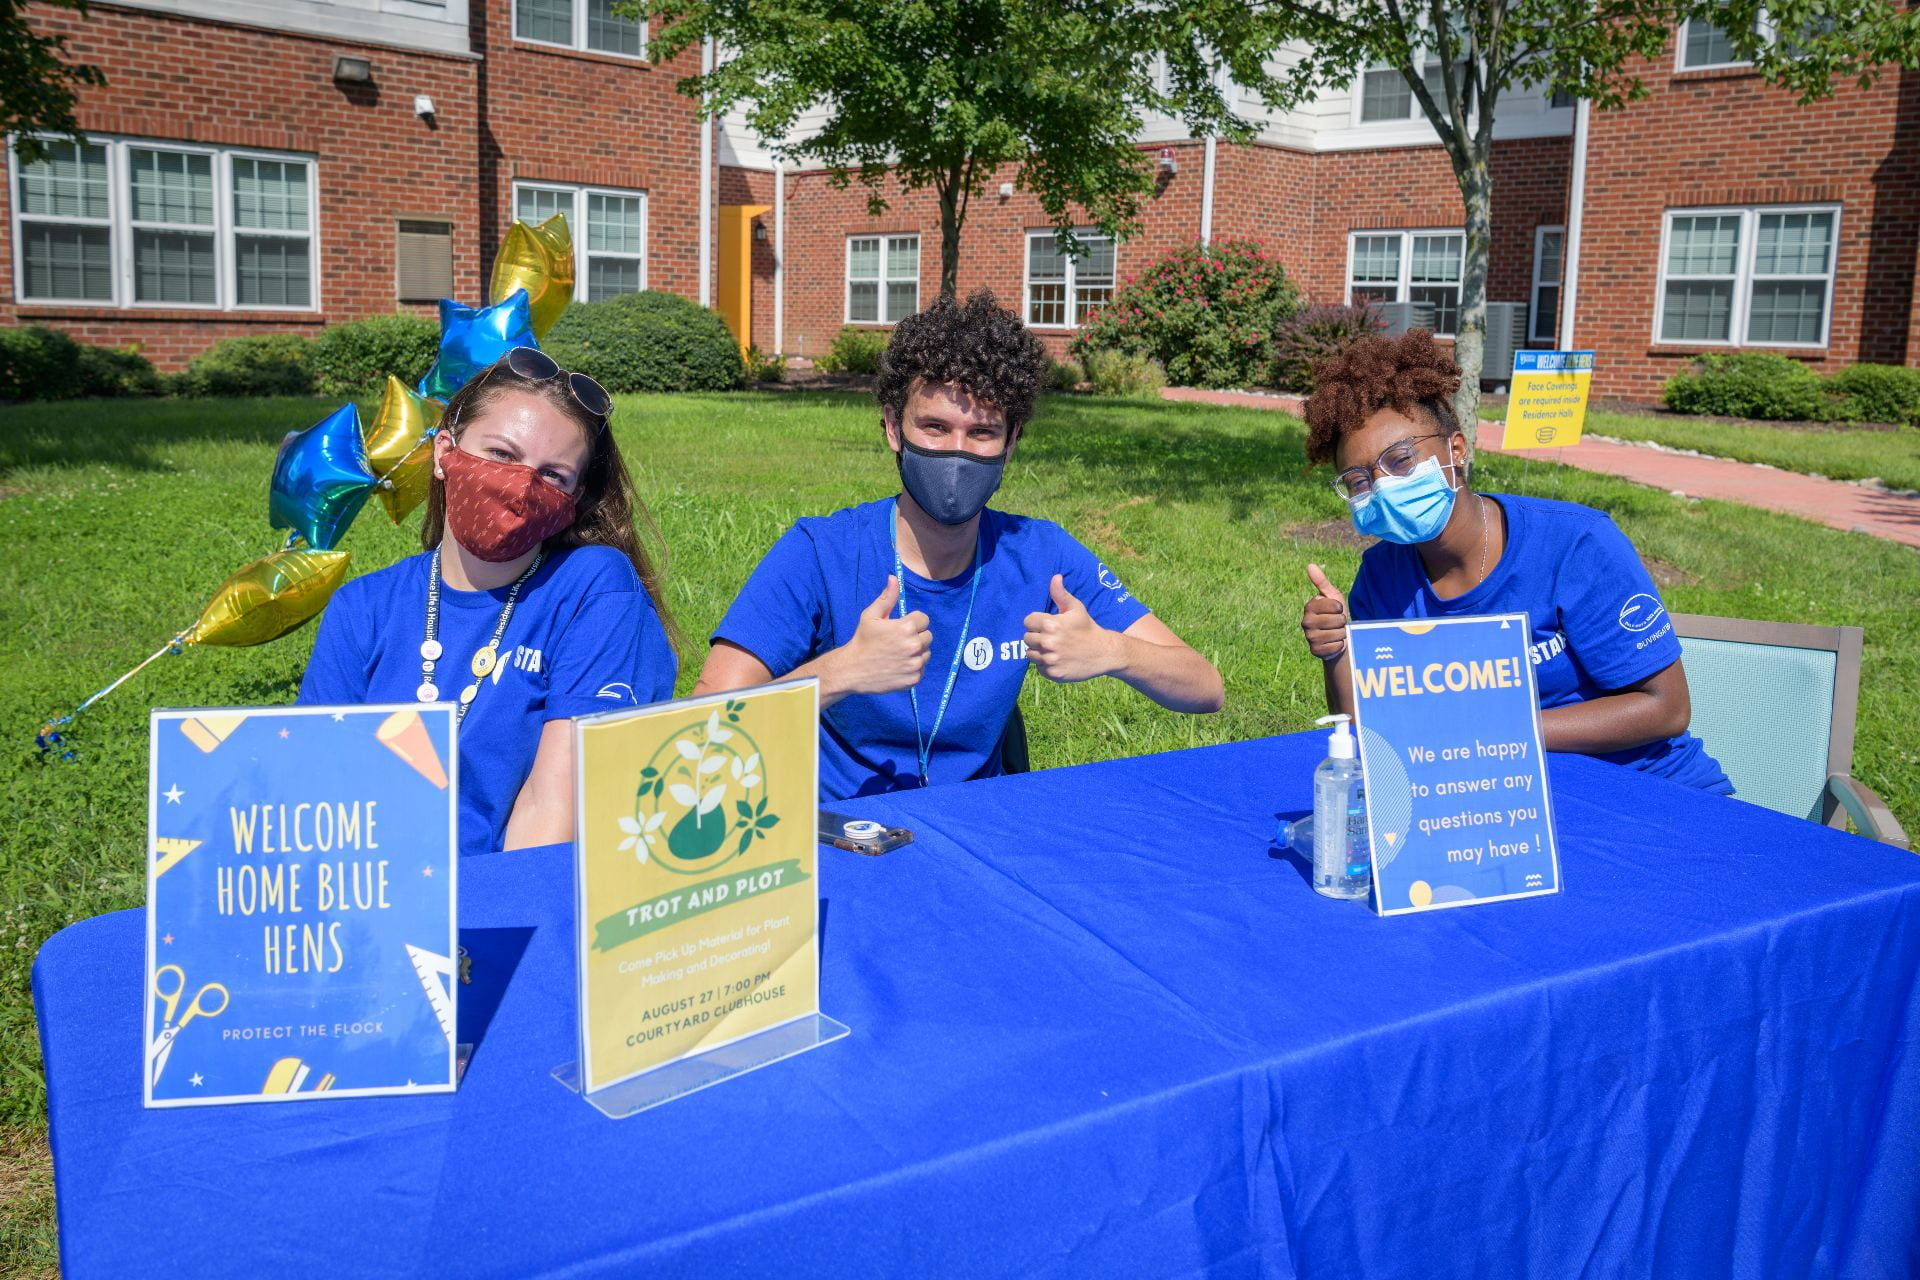 Student employees welcome Blue Hens at the University of Delaware